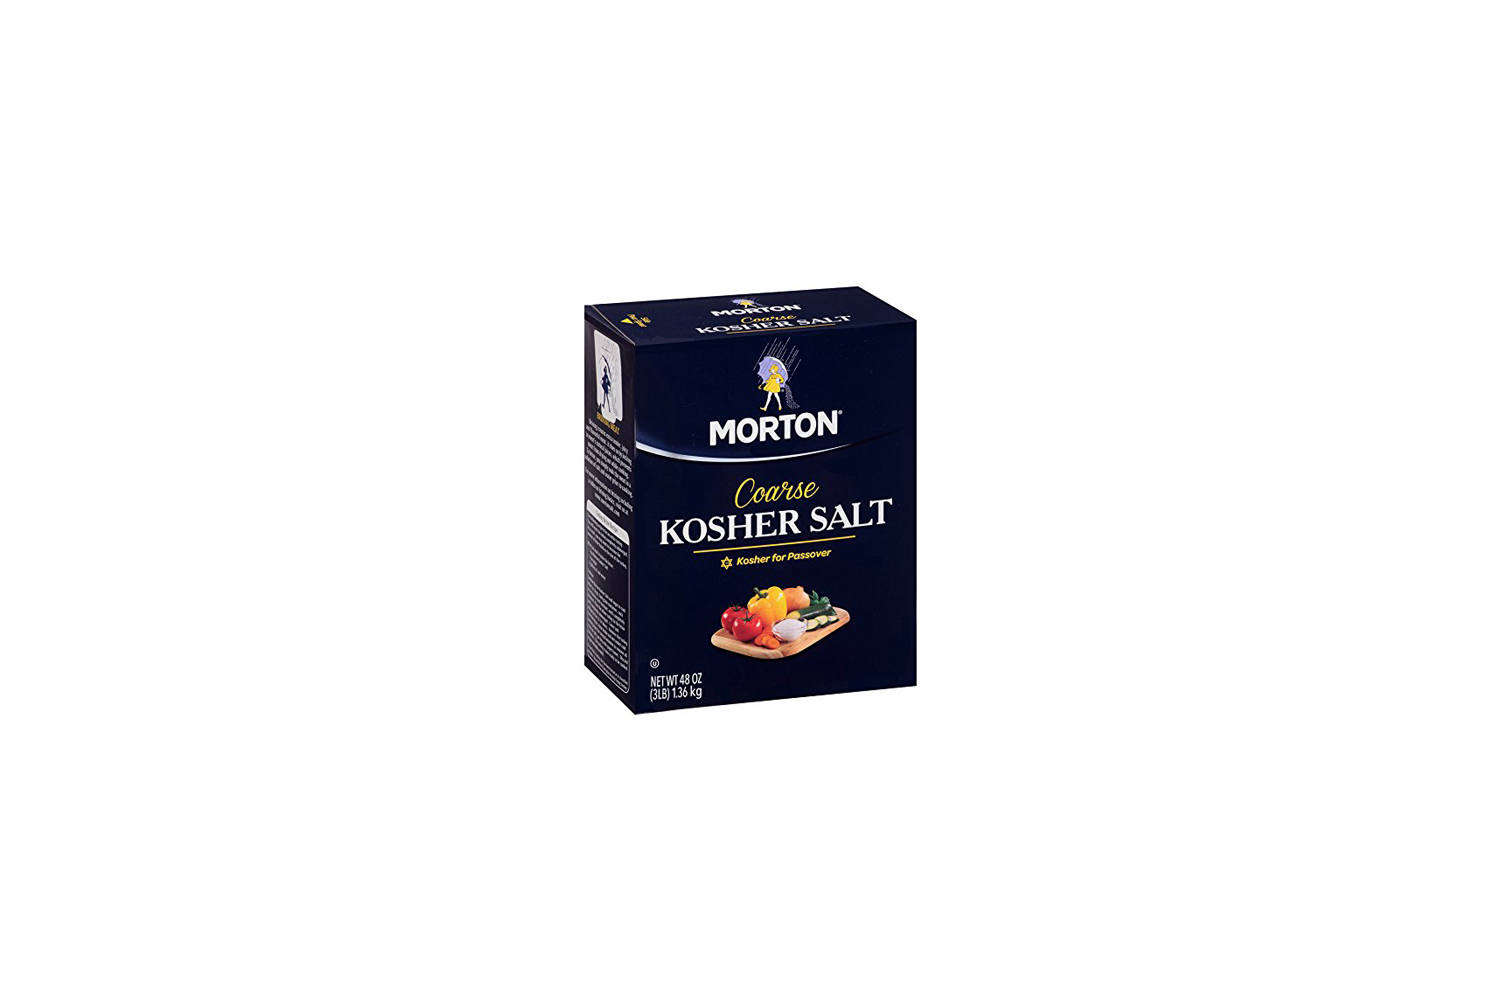 Morton Kosher Salt